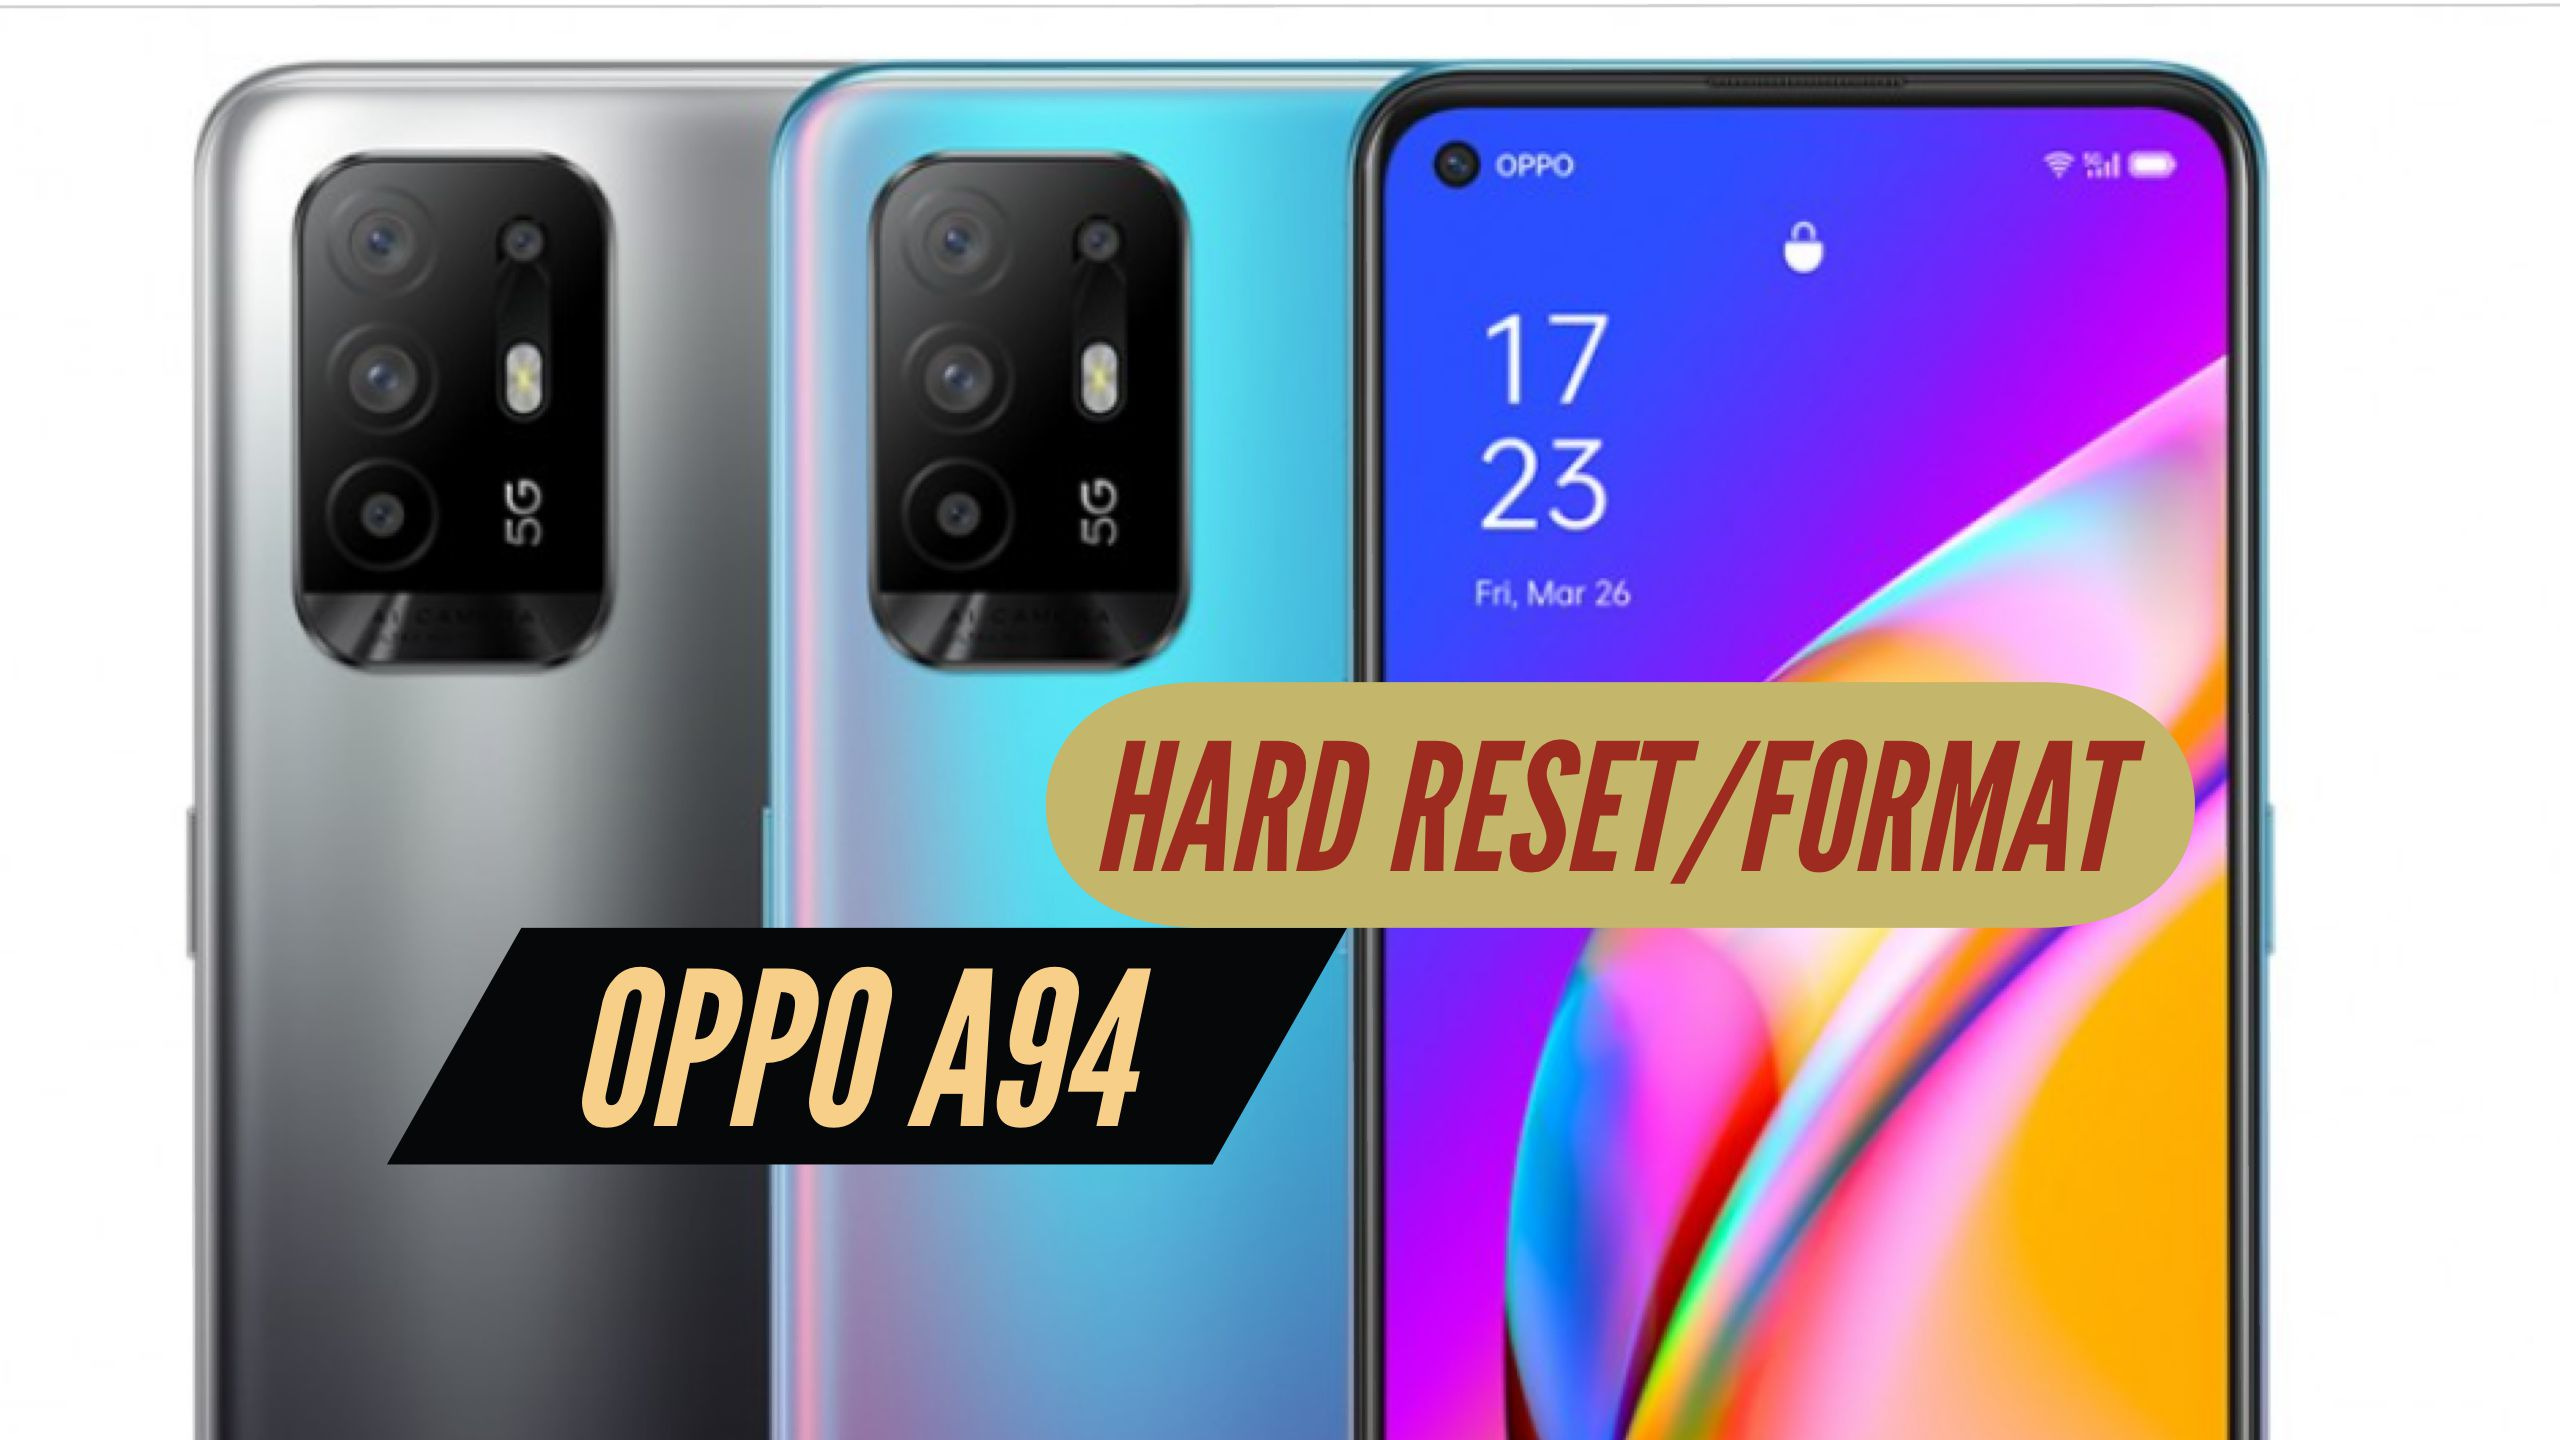 OPPO A94 Hard reset format